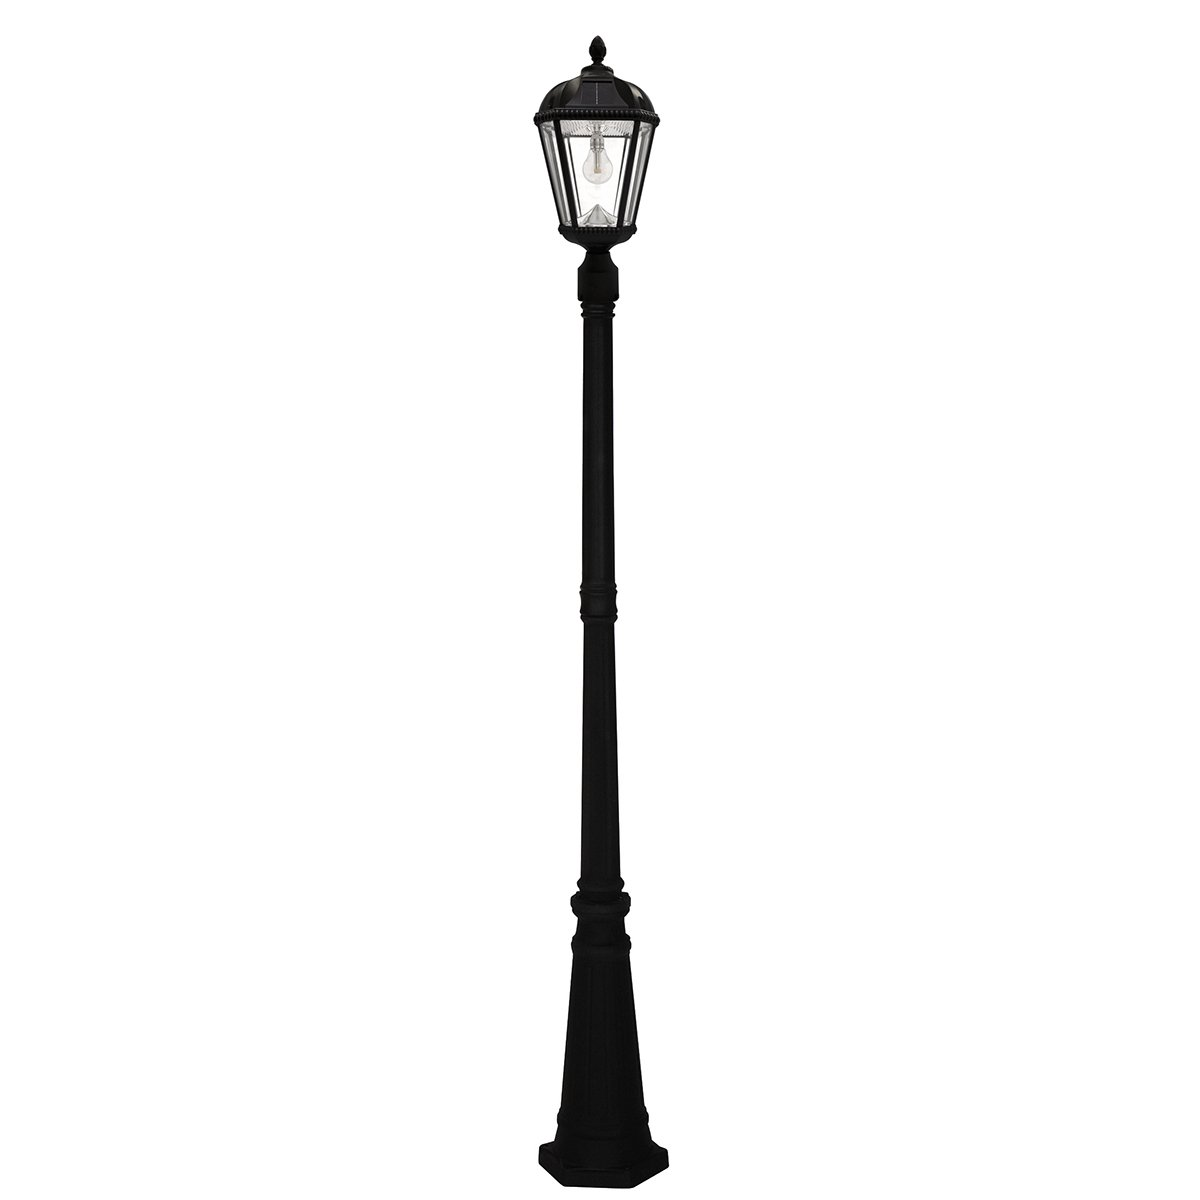 Gama Sonic Royal Bulb Solar Outdoor Lamp Post GS-98B-S-B - Black Finish